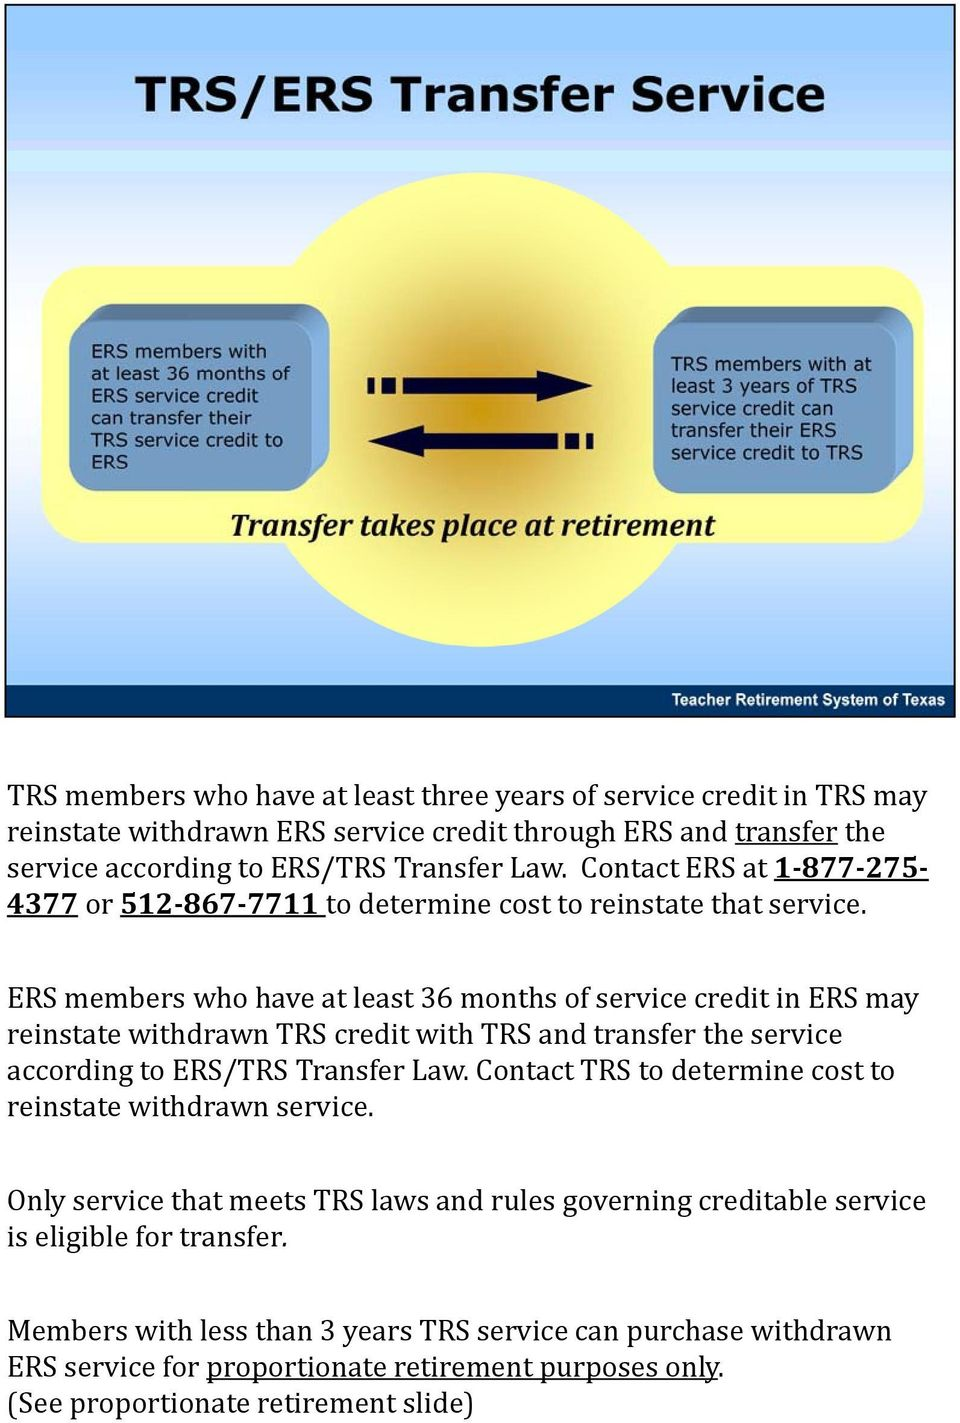 ERS members who have at least 36 months of service credit in ERS may reinstate withdrawn TRS credit with TRS and transfer the service according to ERS/TRS Transfer Law.